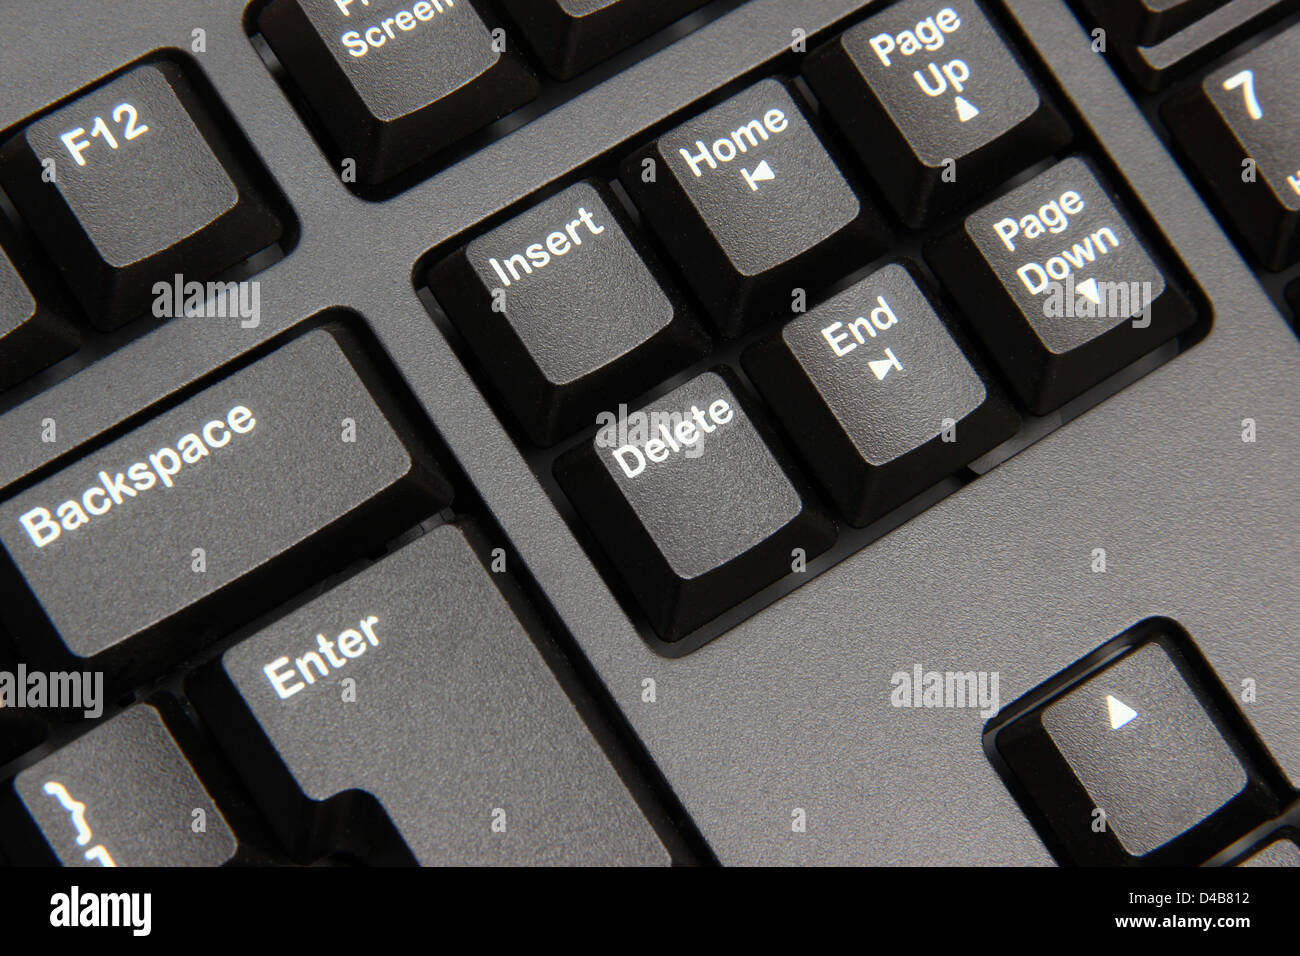 Close up of delete button on computer keyboard - Stock Image